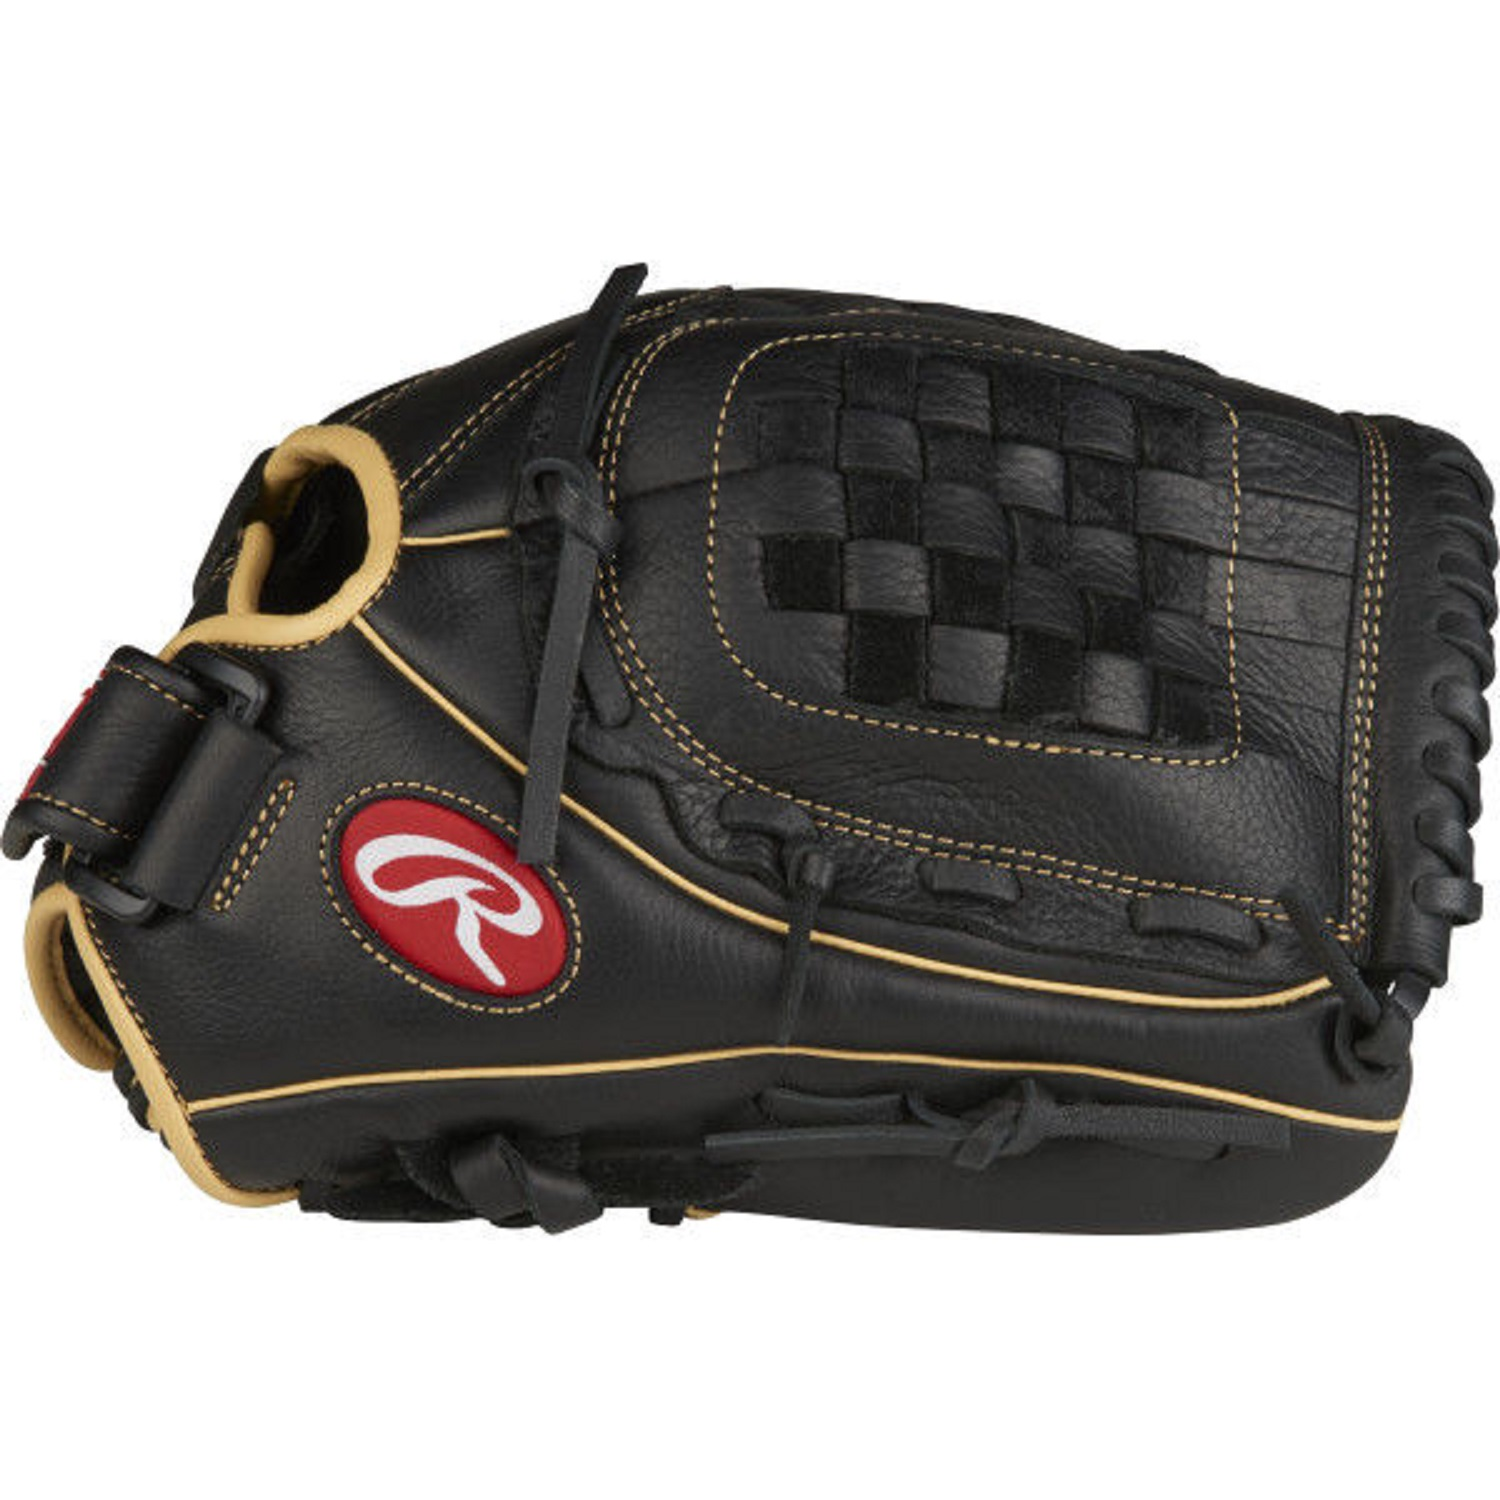 Rawlings Rawlings Shut Out 12